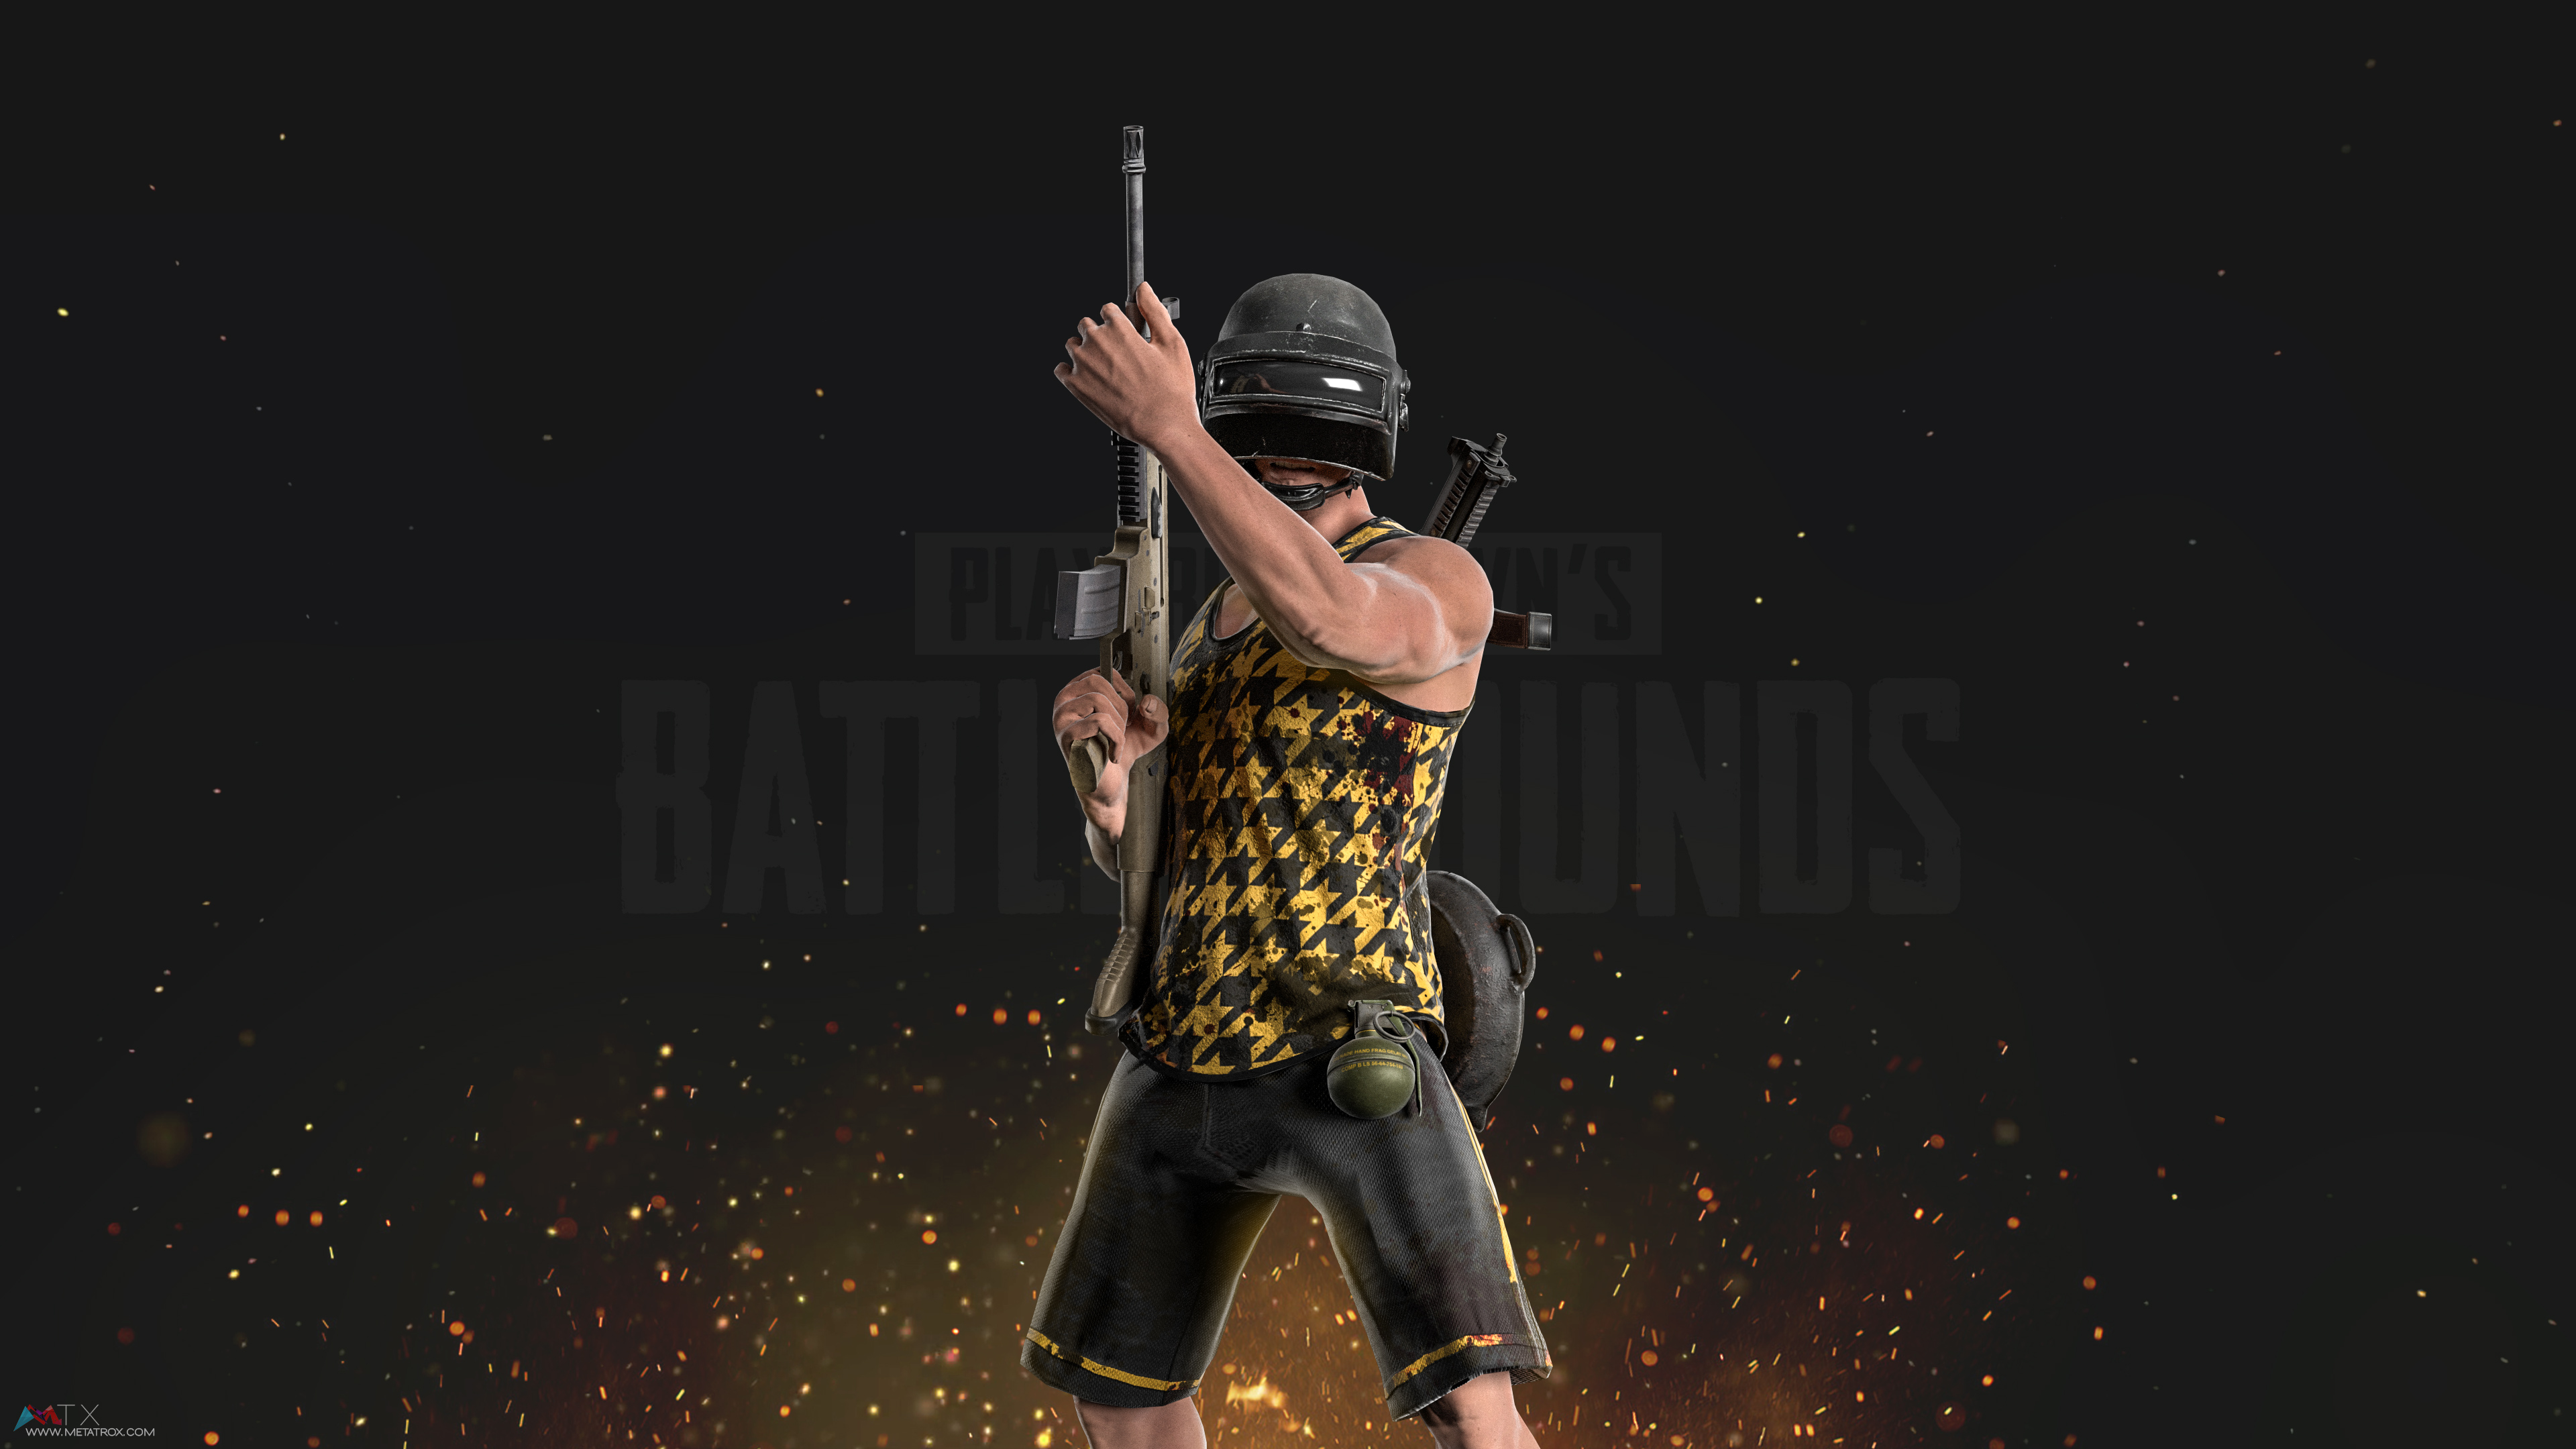 Download 1366x768 Pubg Mobile Characters Playerunknown S: PUBG PlayerUnknown's Battlegrounds 4K Wallpapers